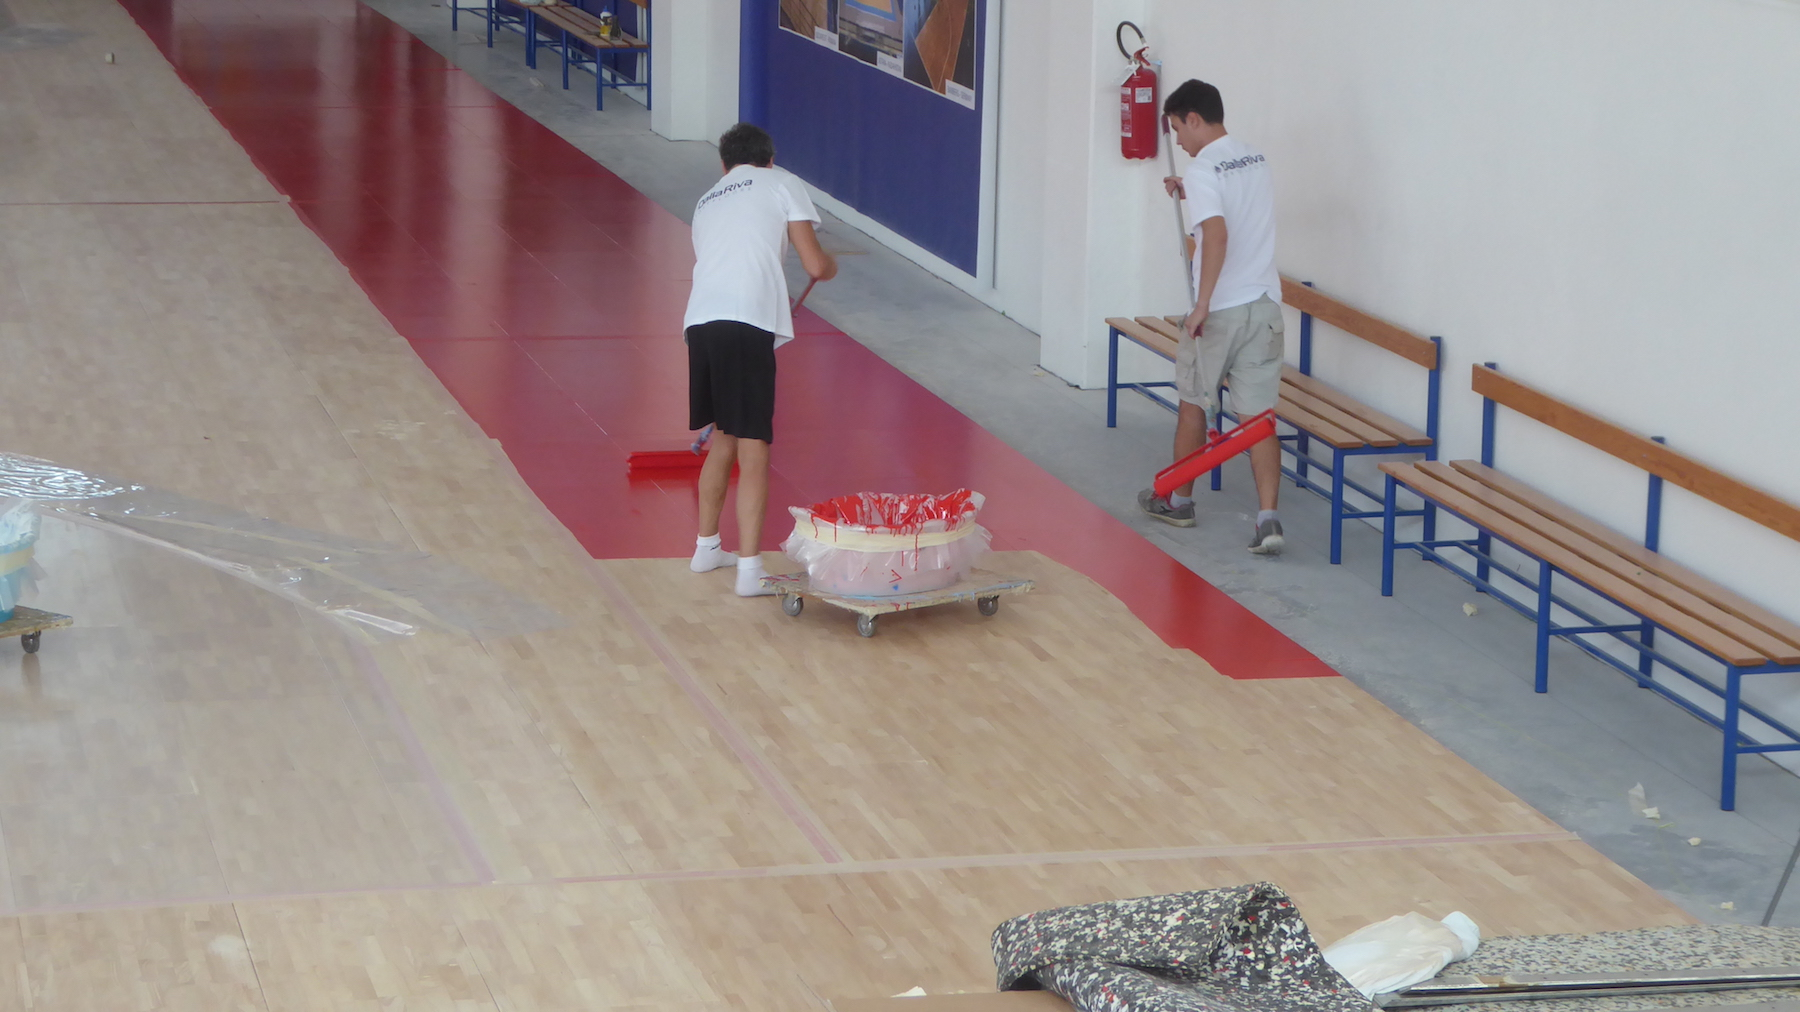 Our technicians engaged with the bright red color of the side bands